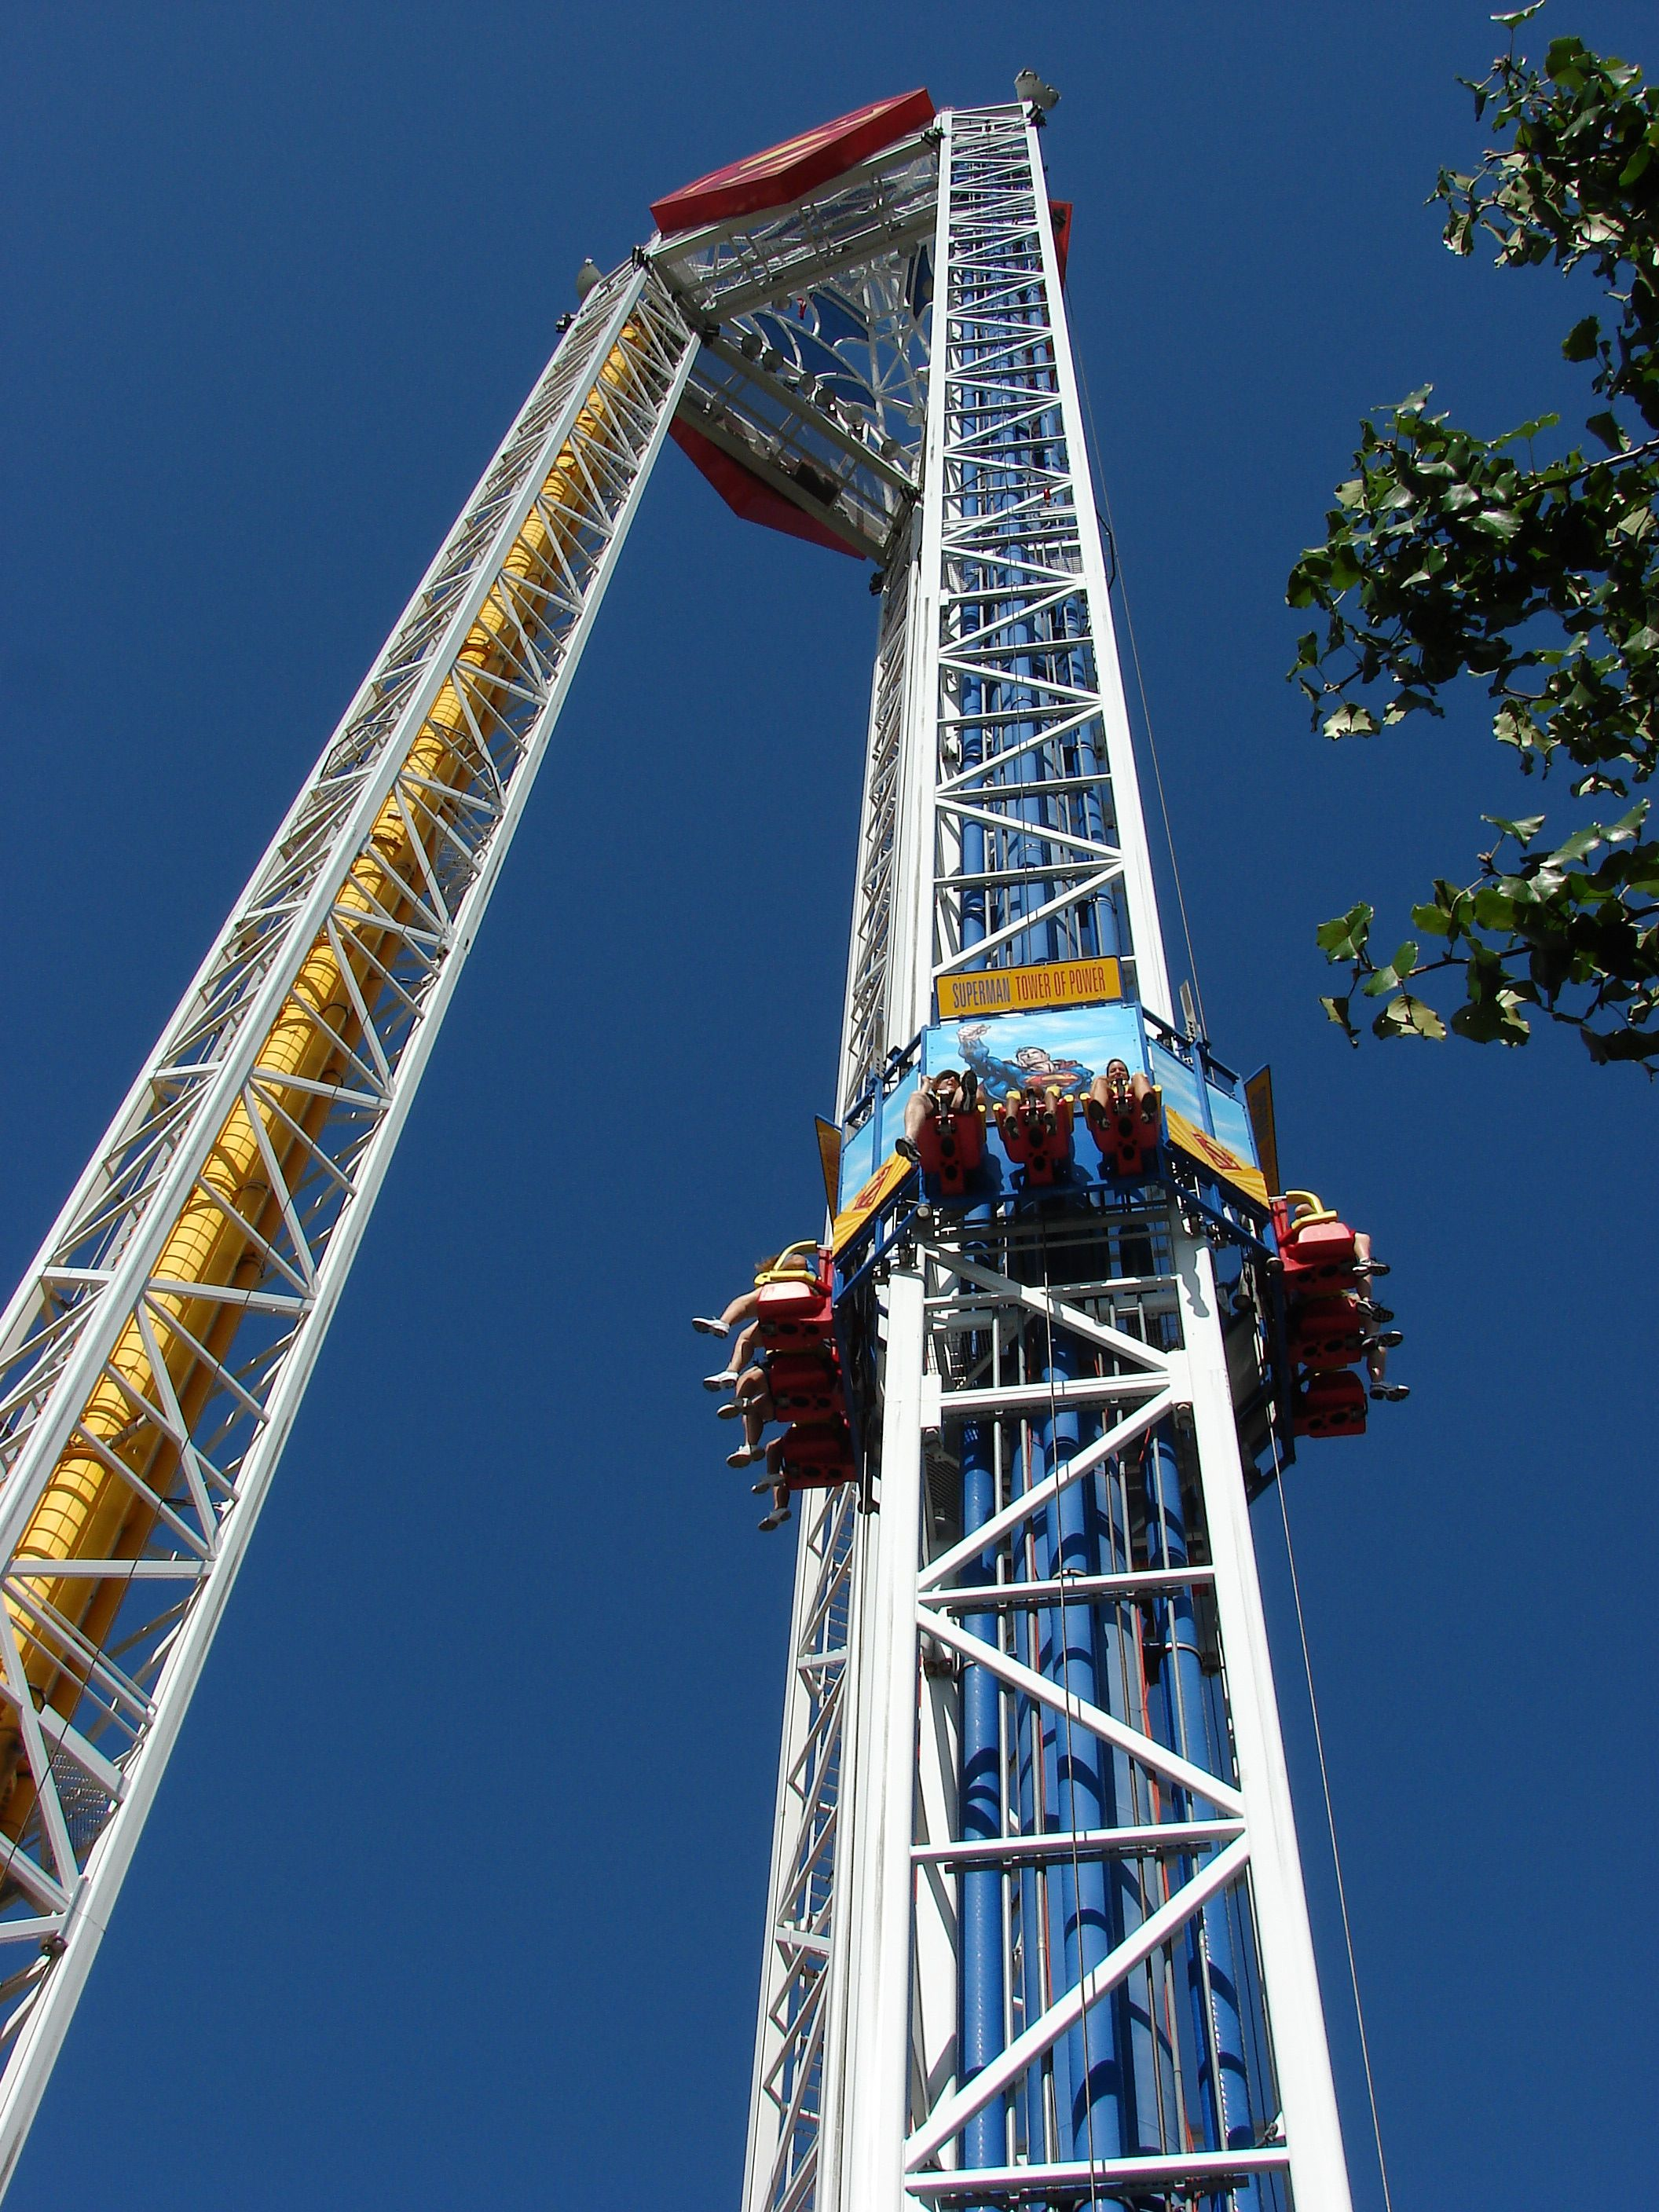 Superman Tower Of Power Ride At Six Flags Over Texas Nightlife Travel Las Vegas Hotels Arlington Hotel